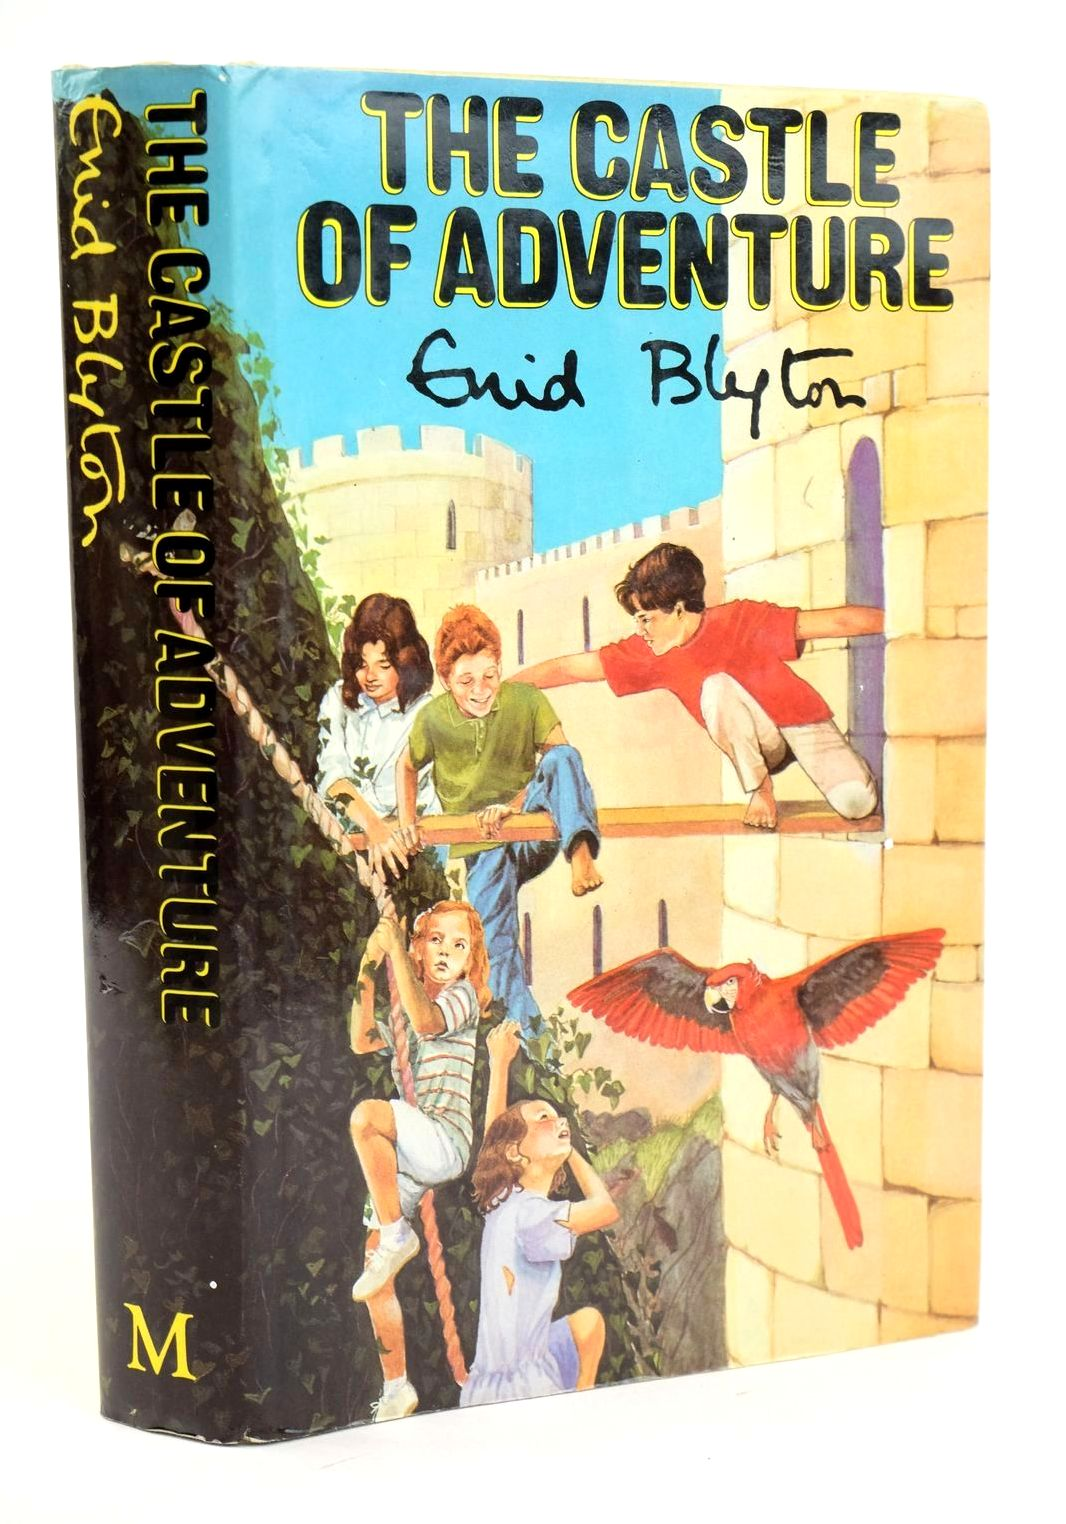 Photo of THE CASTLE OF ADVENTURE written by Blyton, Enid illustrated by Tresilian, Stuart published by Macmillan Children's Books (STOCK CODE: 1319113)  for sale by Stella & Rose's Books